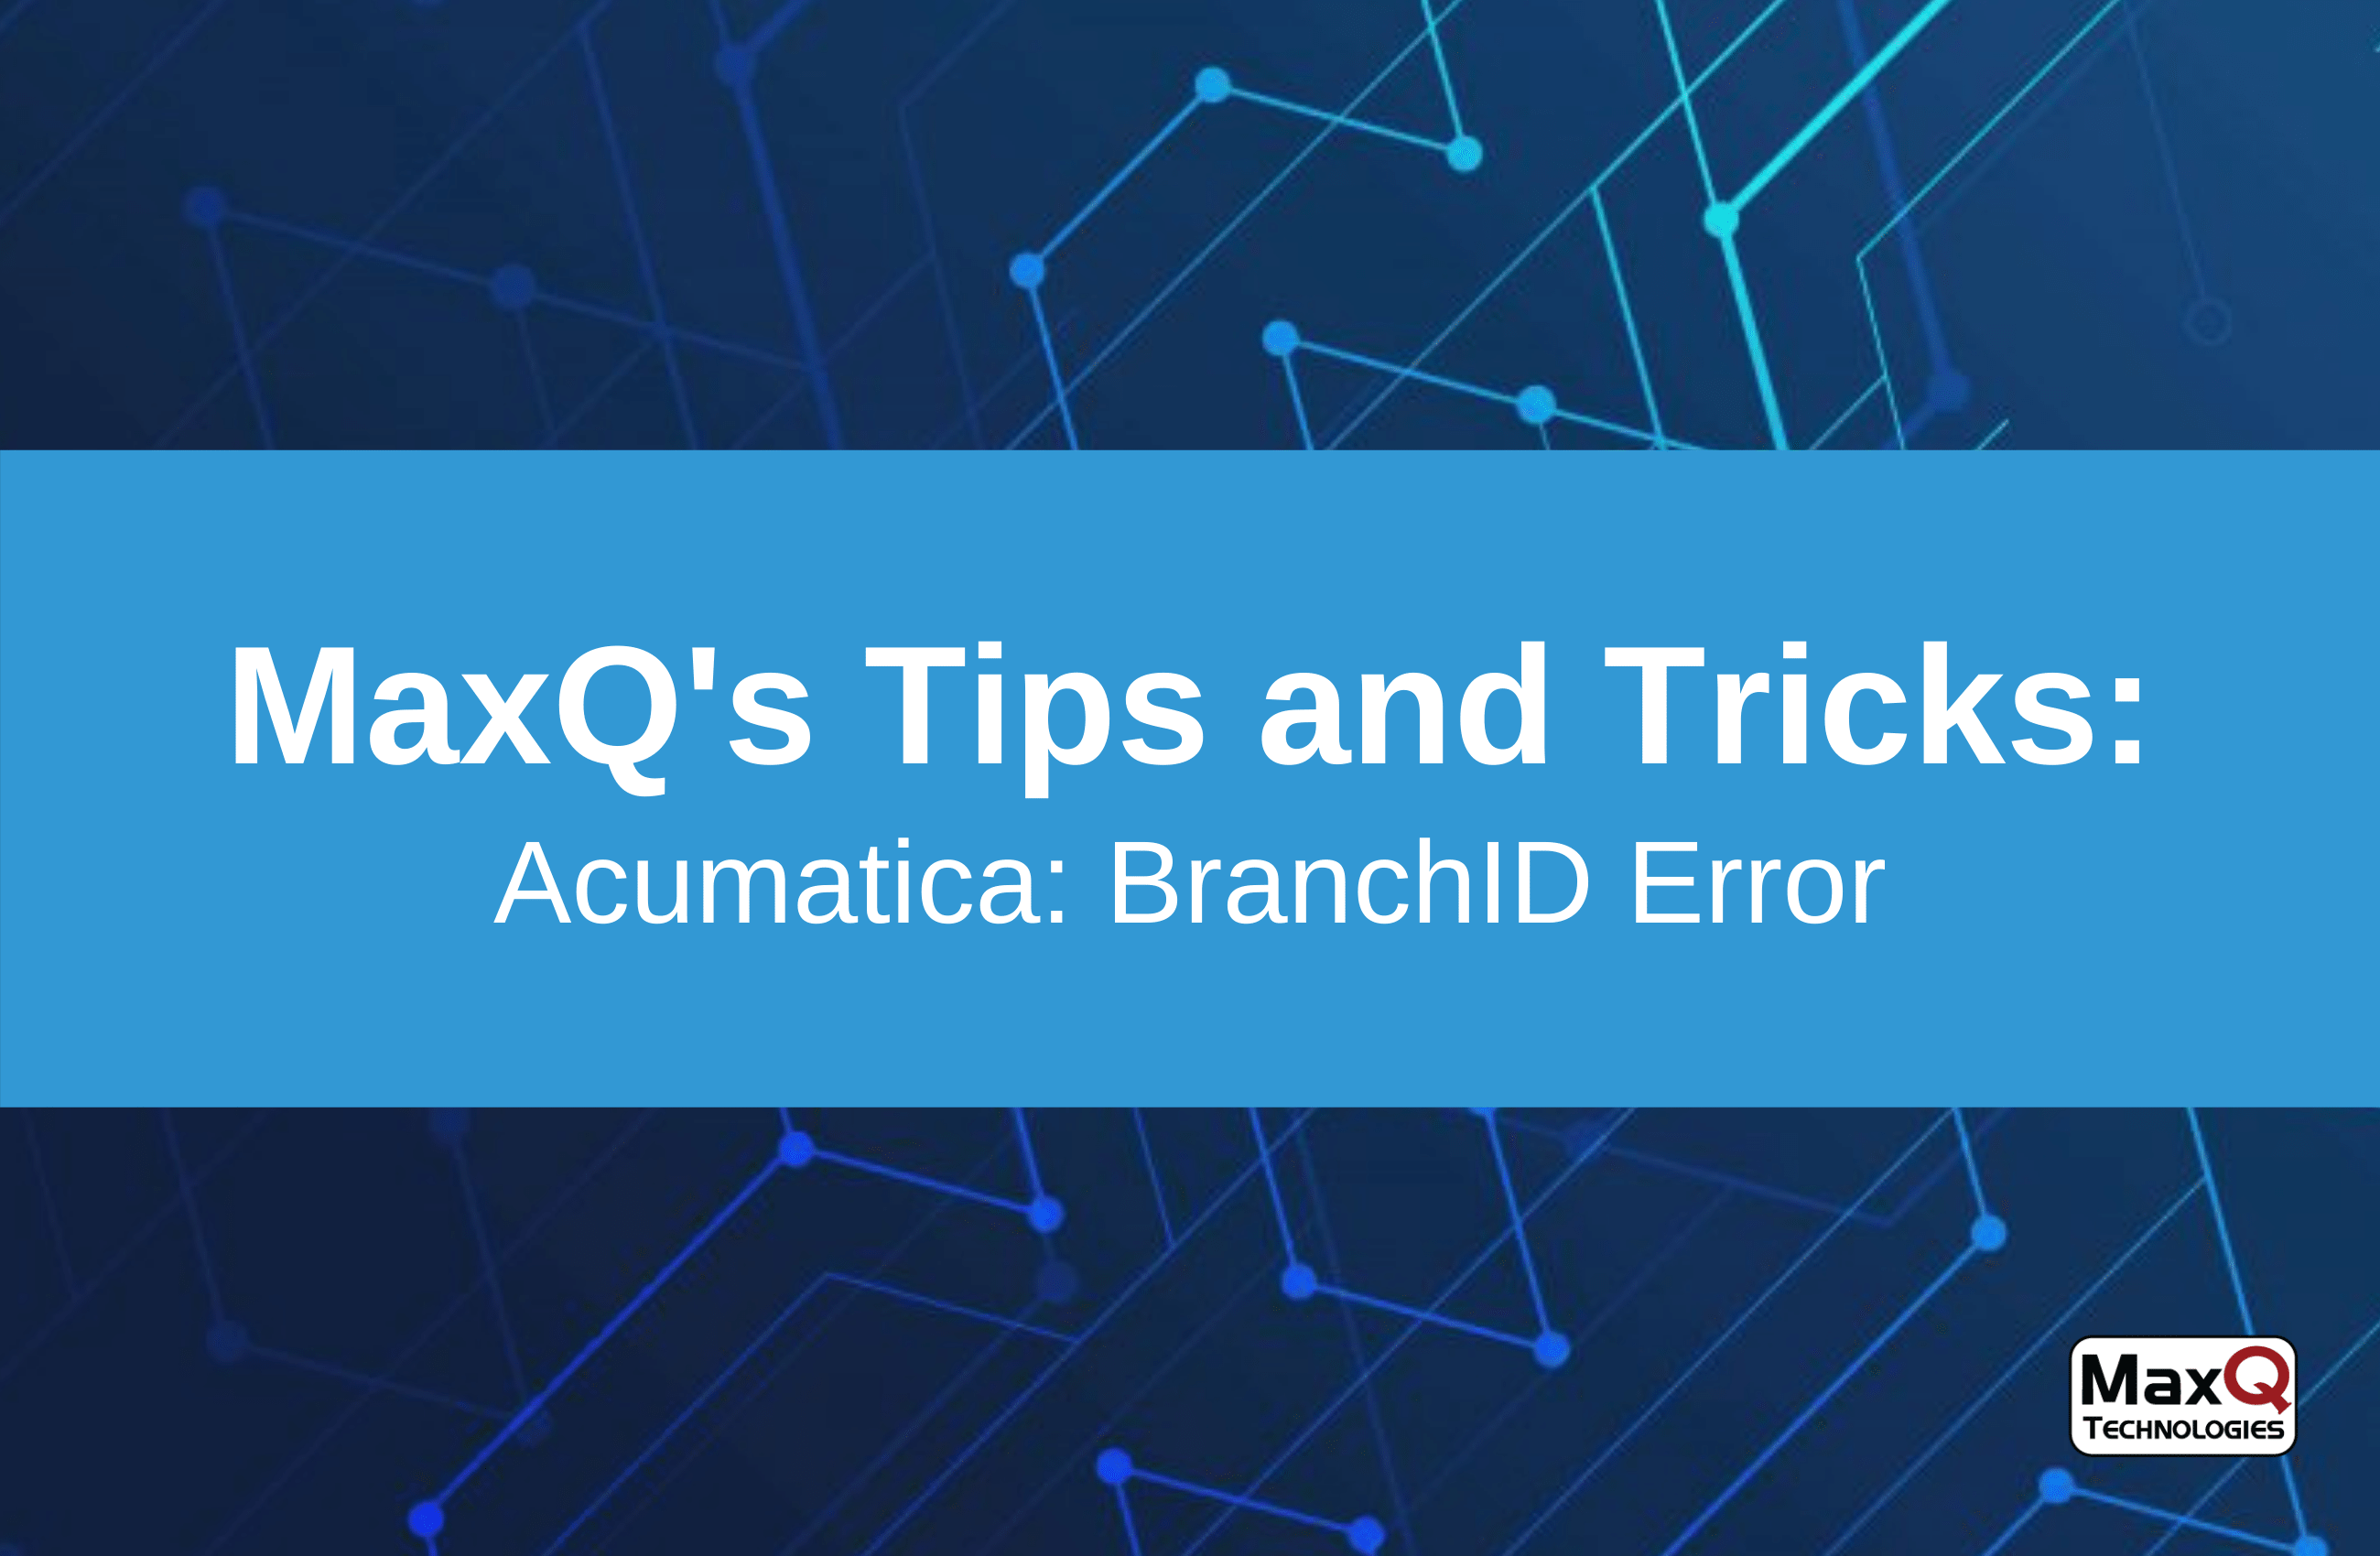 You are currently viewing Acumatica – BranchID Error